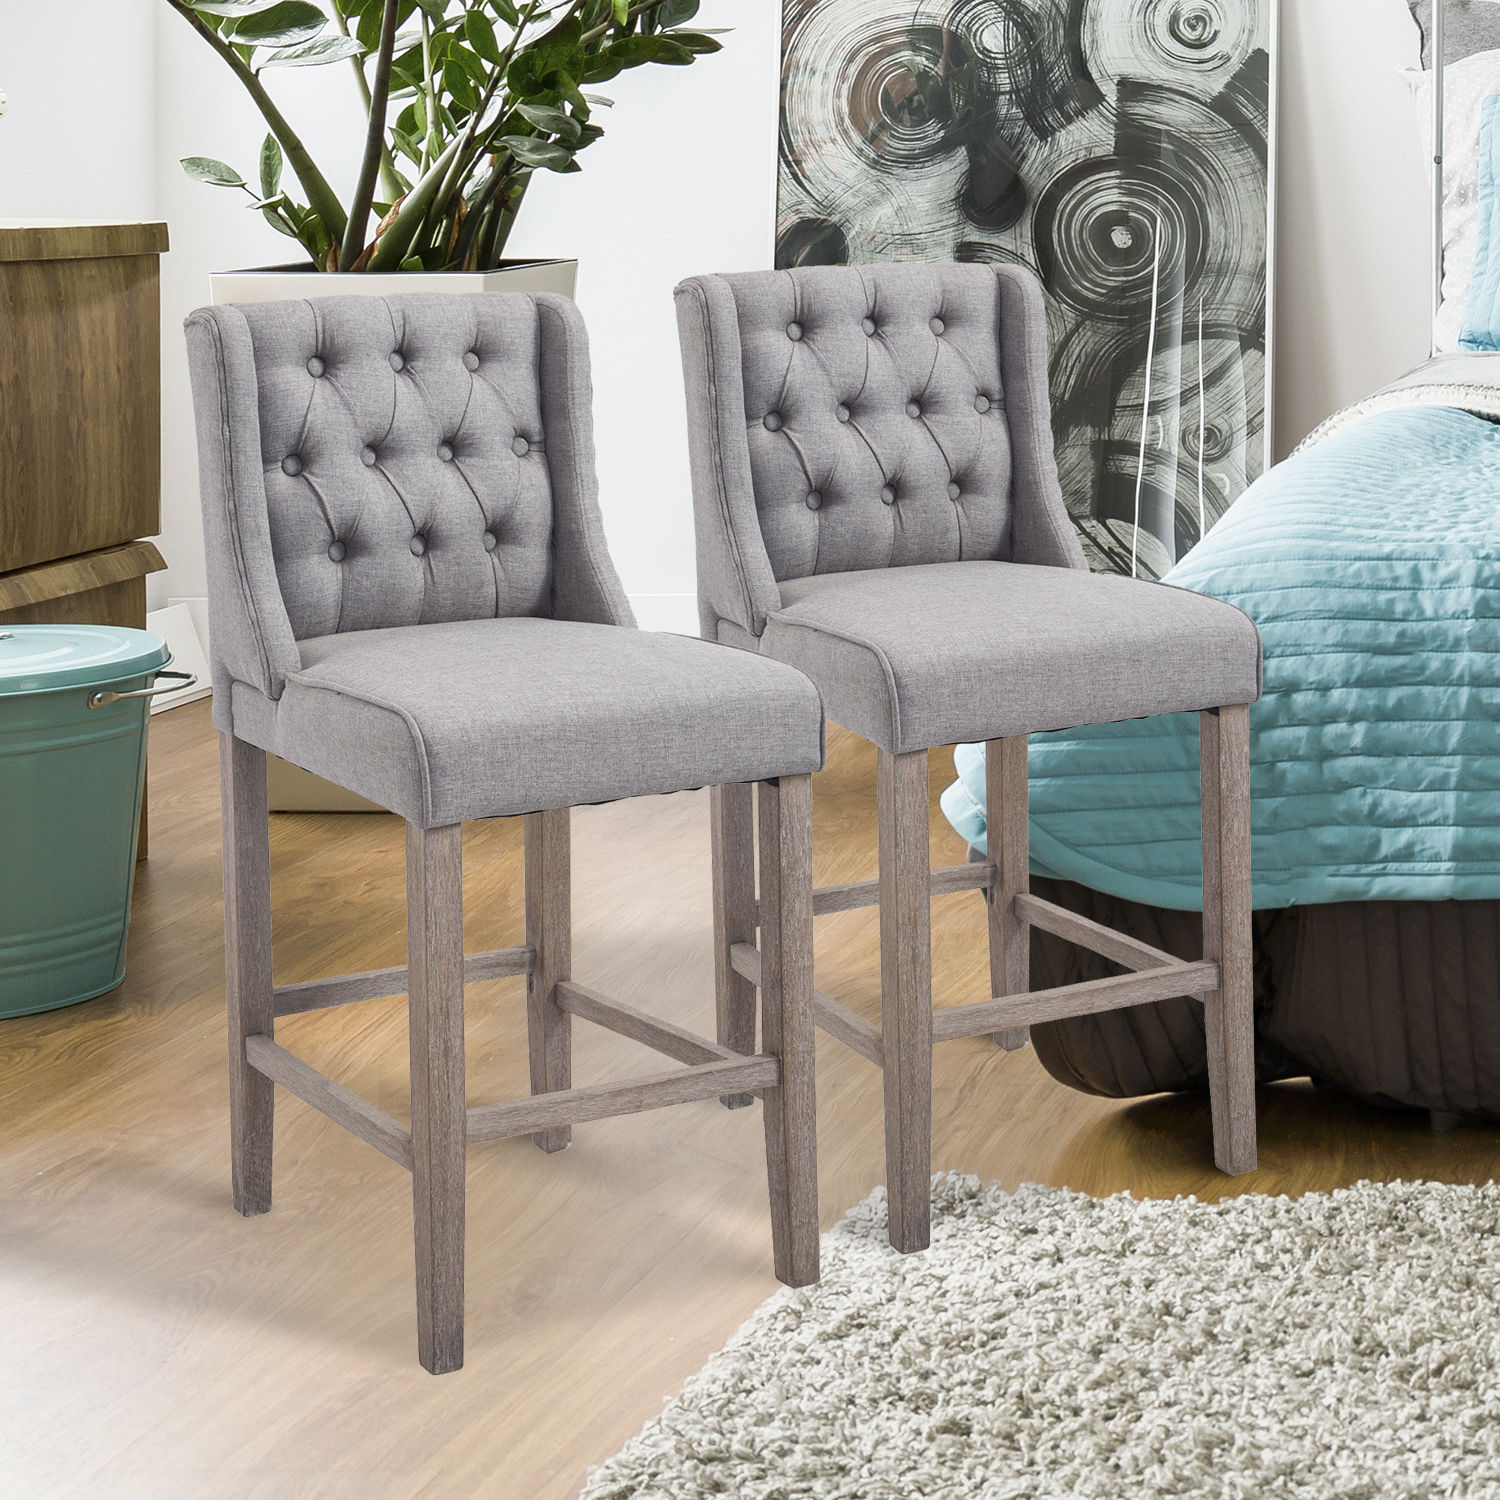 Amazing Details About Set Of 2 Counter High Dining Chair Bar Stool Elegant Button Tufted Furniture Cjindustries Chair Design For Home Cjindustriesco